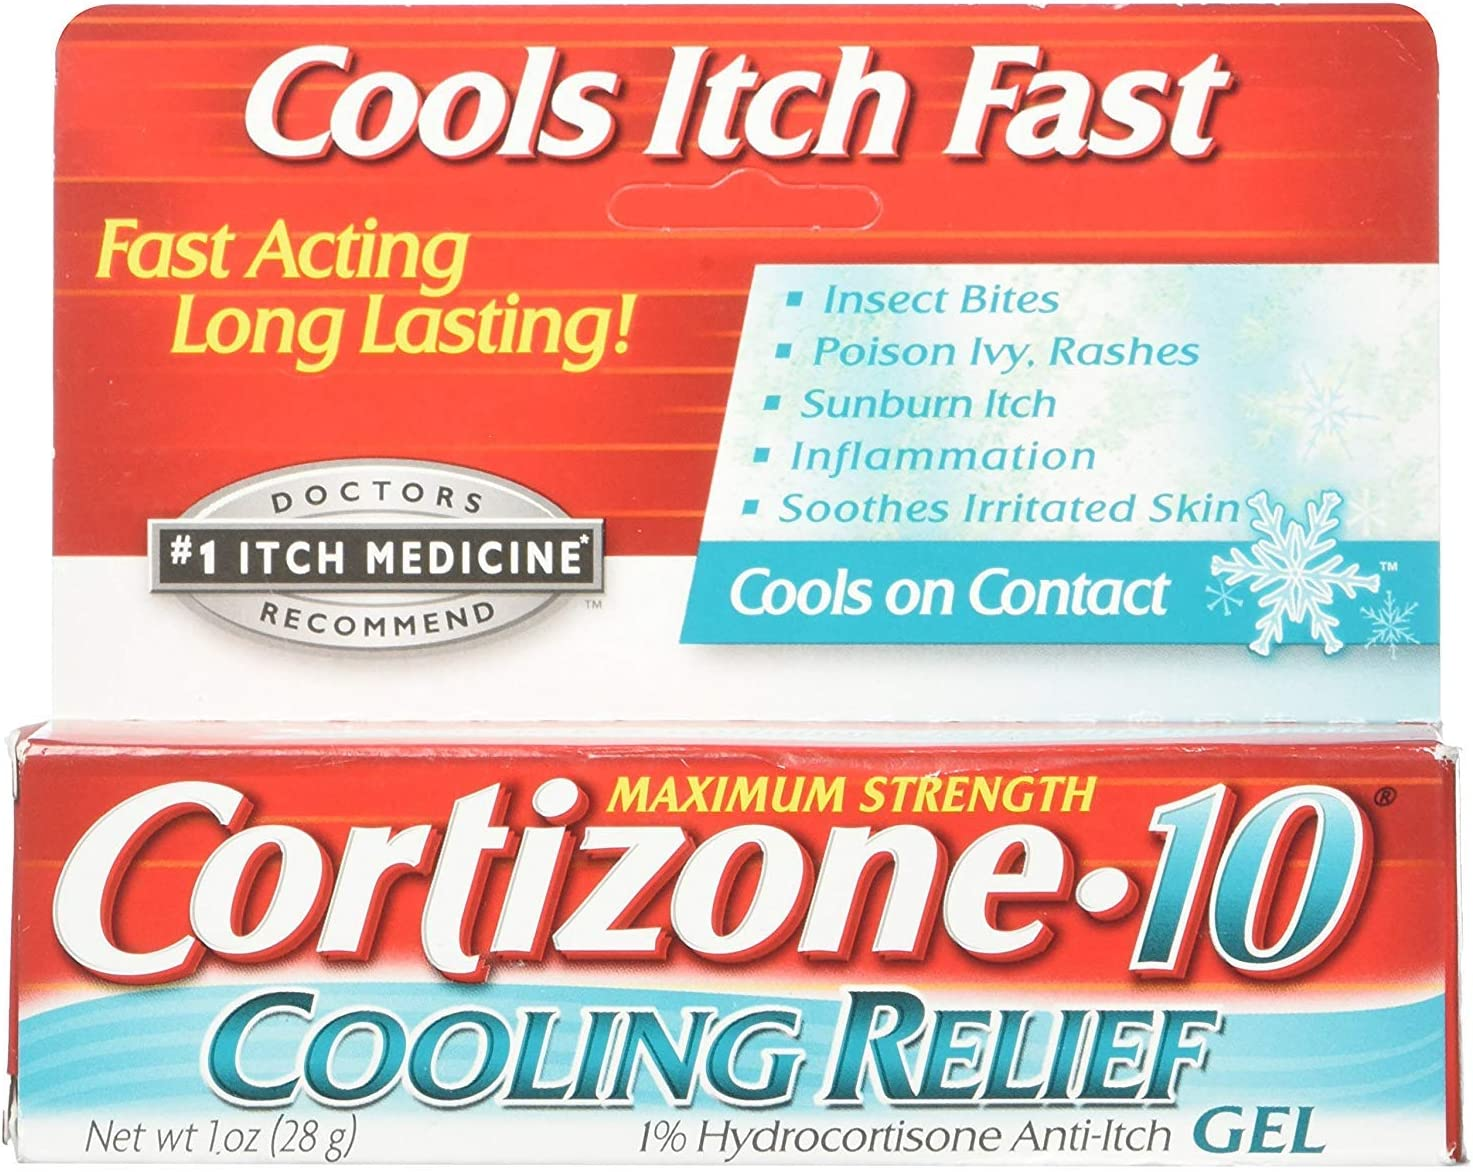 Cortizone-10 Cooling Relief Anti-Itch Gel 1 oz (Pack of 12)